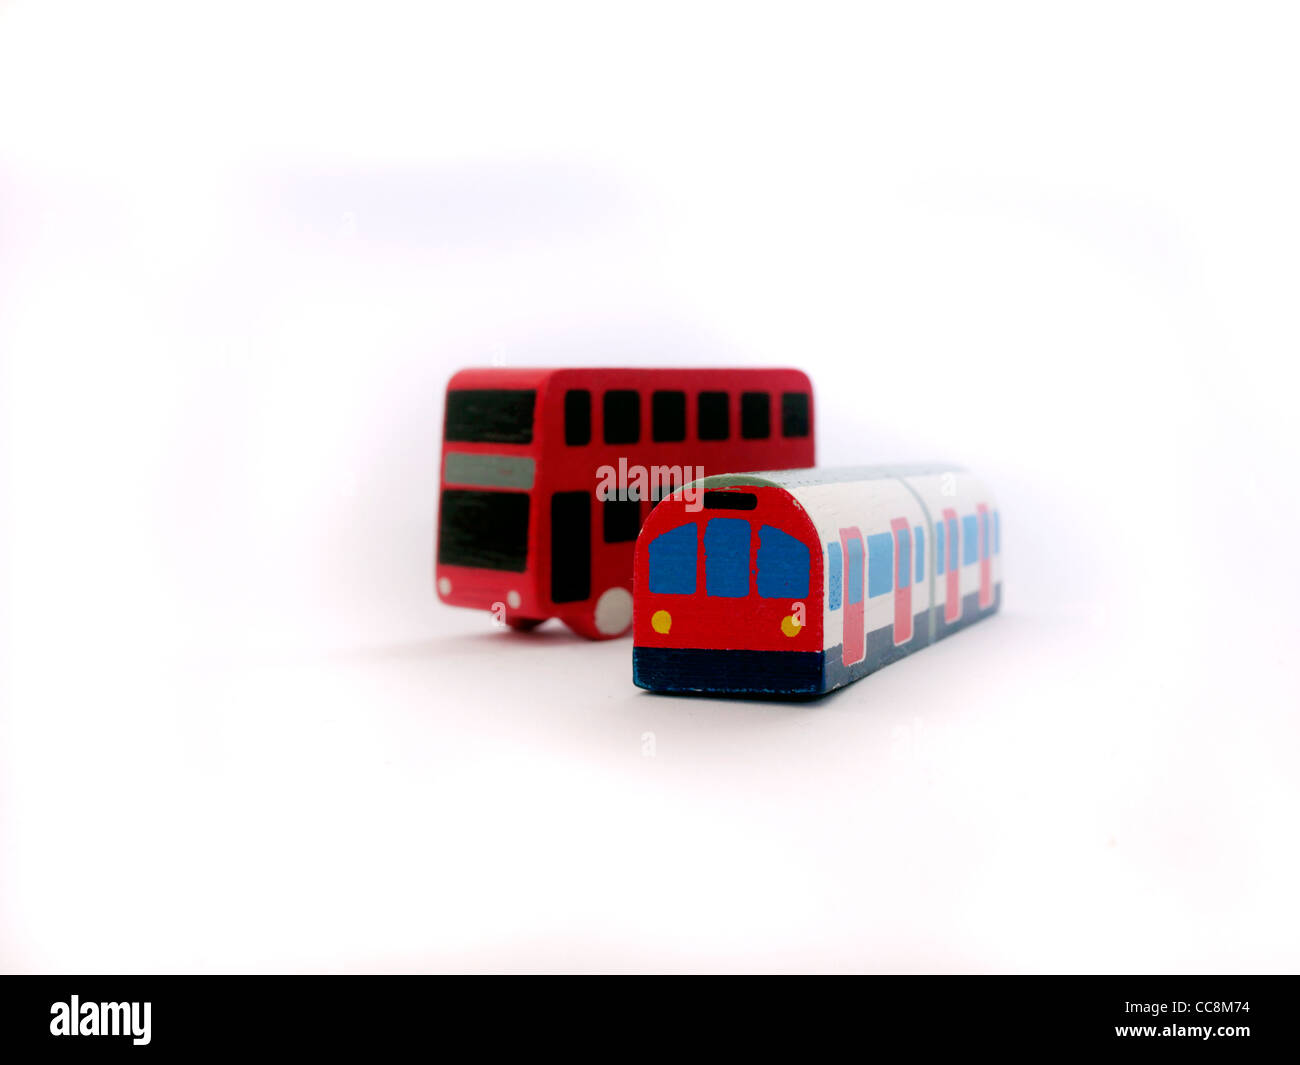 Public means of transportation - Stock Image